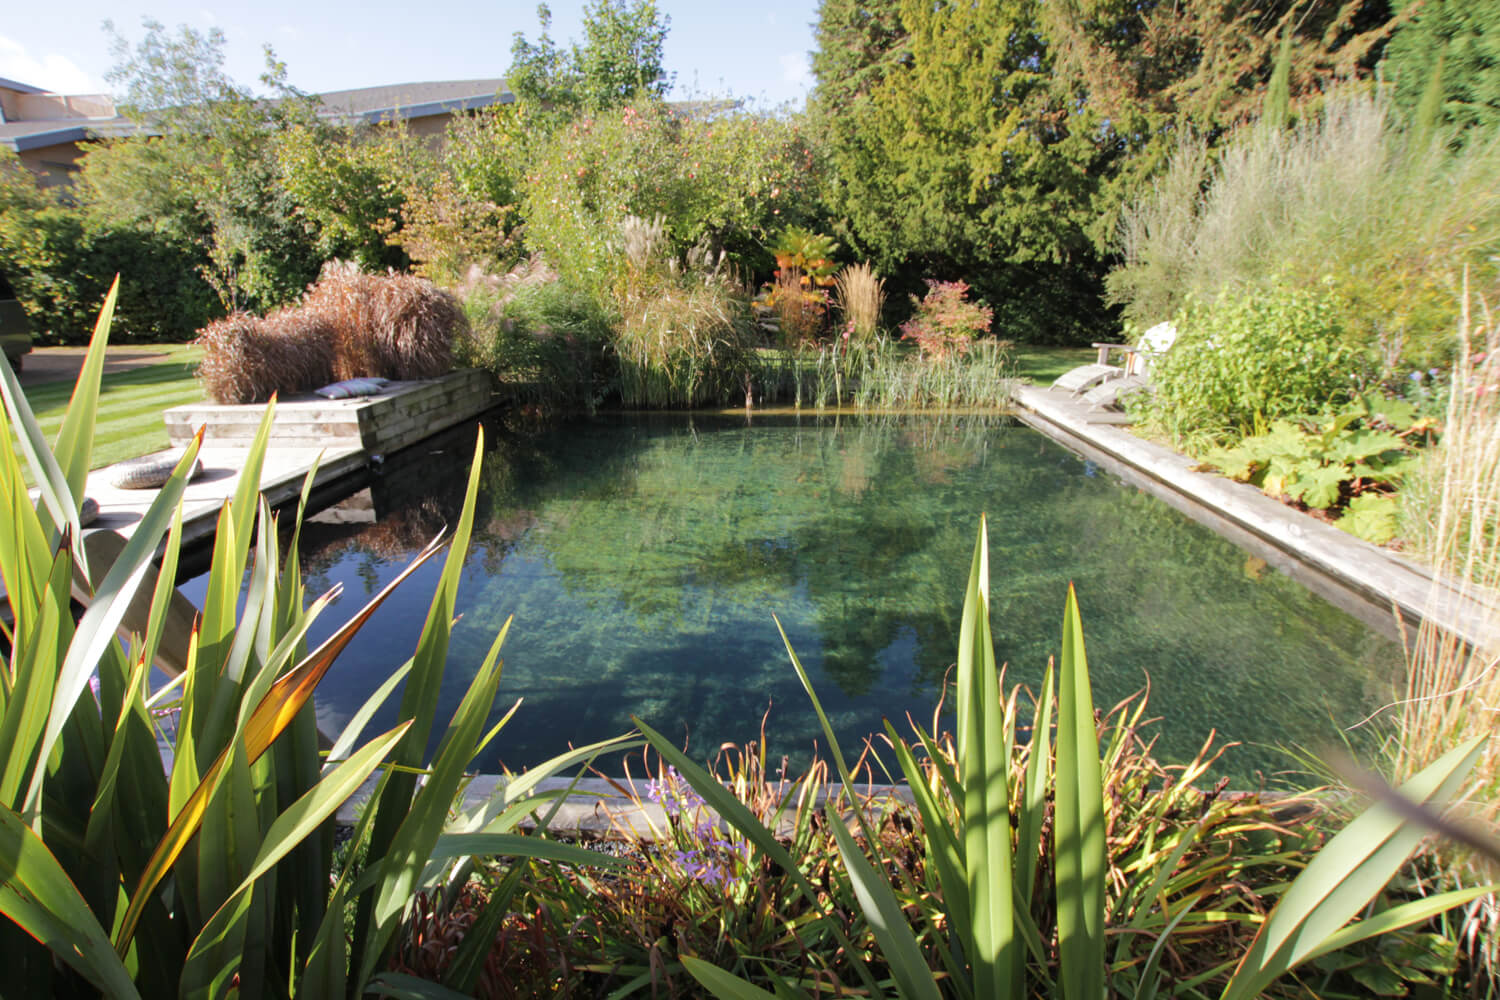 Natural pool in a garden